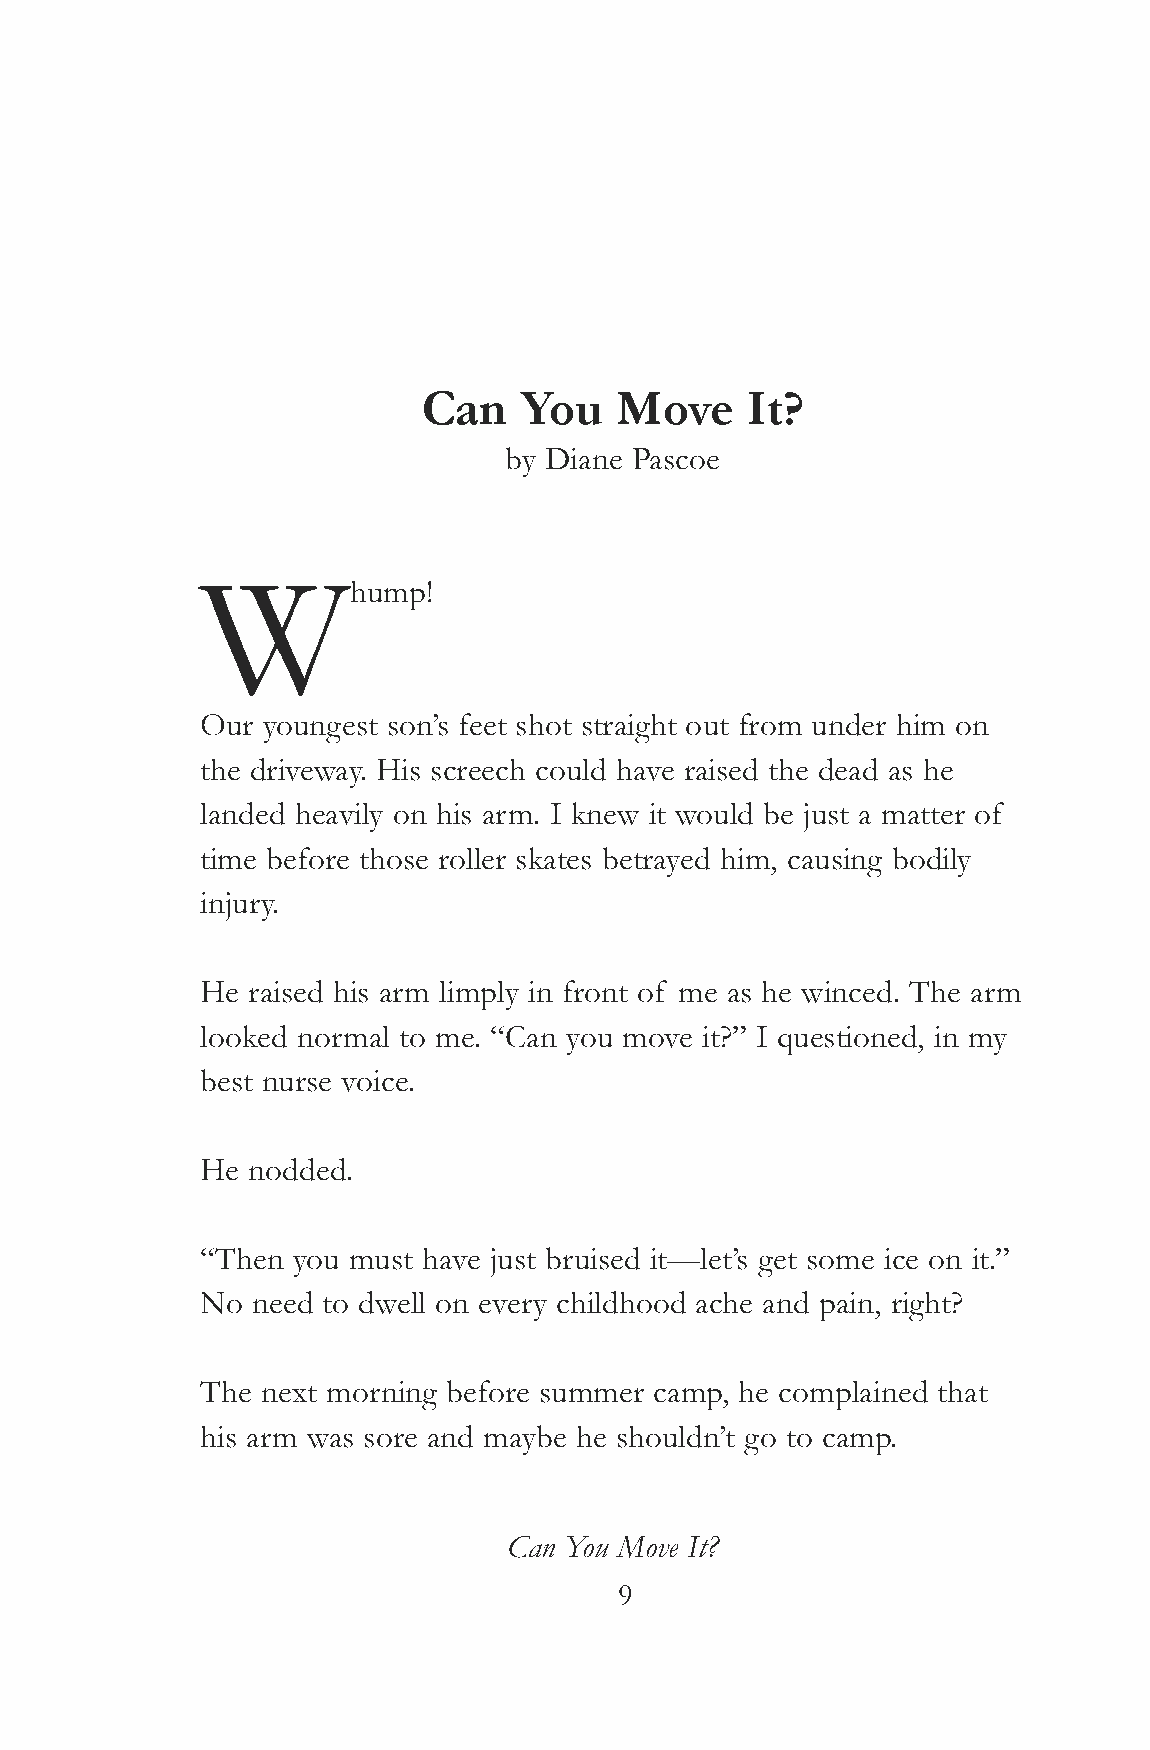 Can You Move It - p 9.png